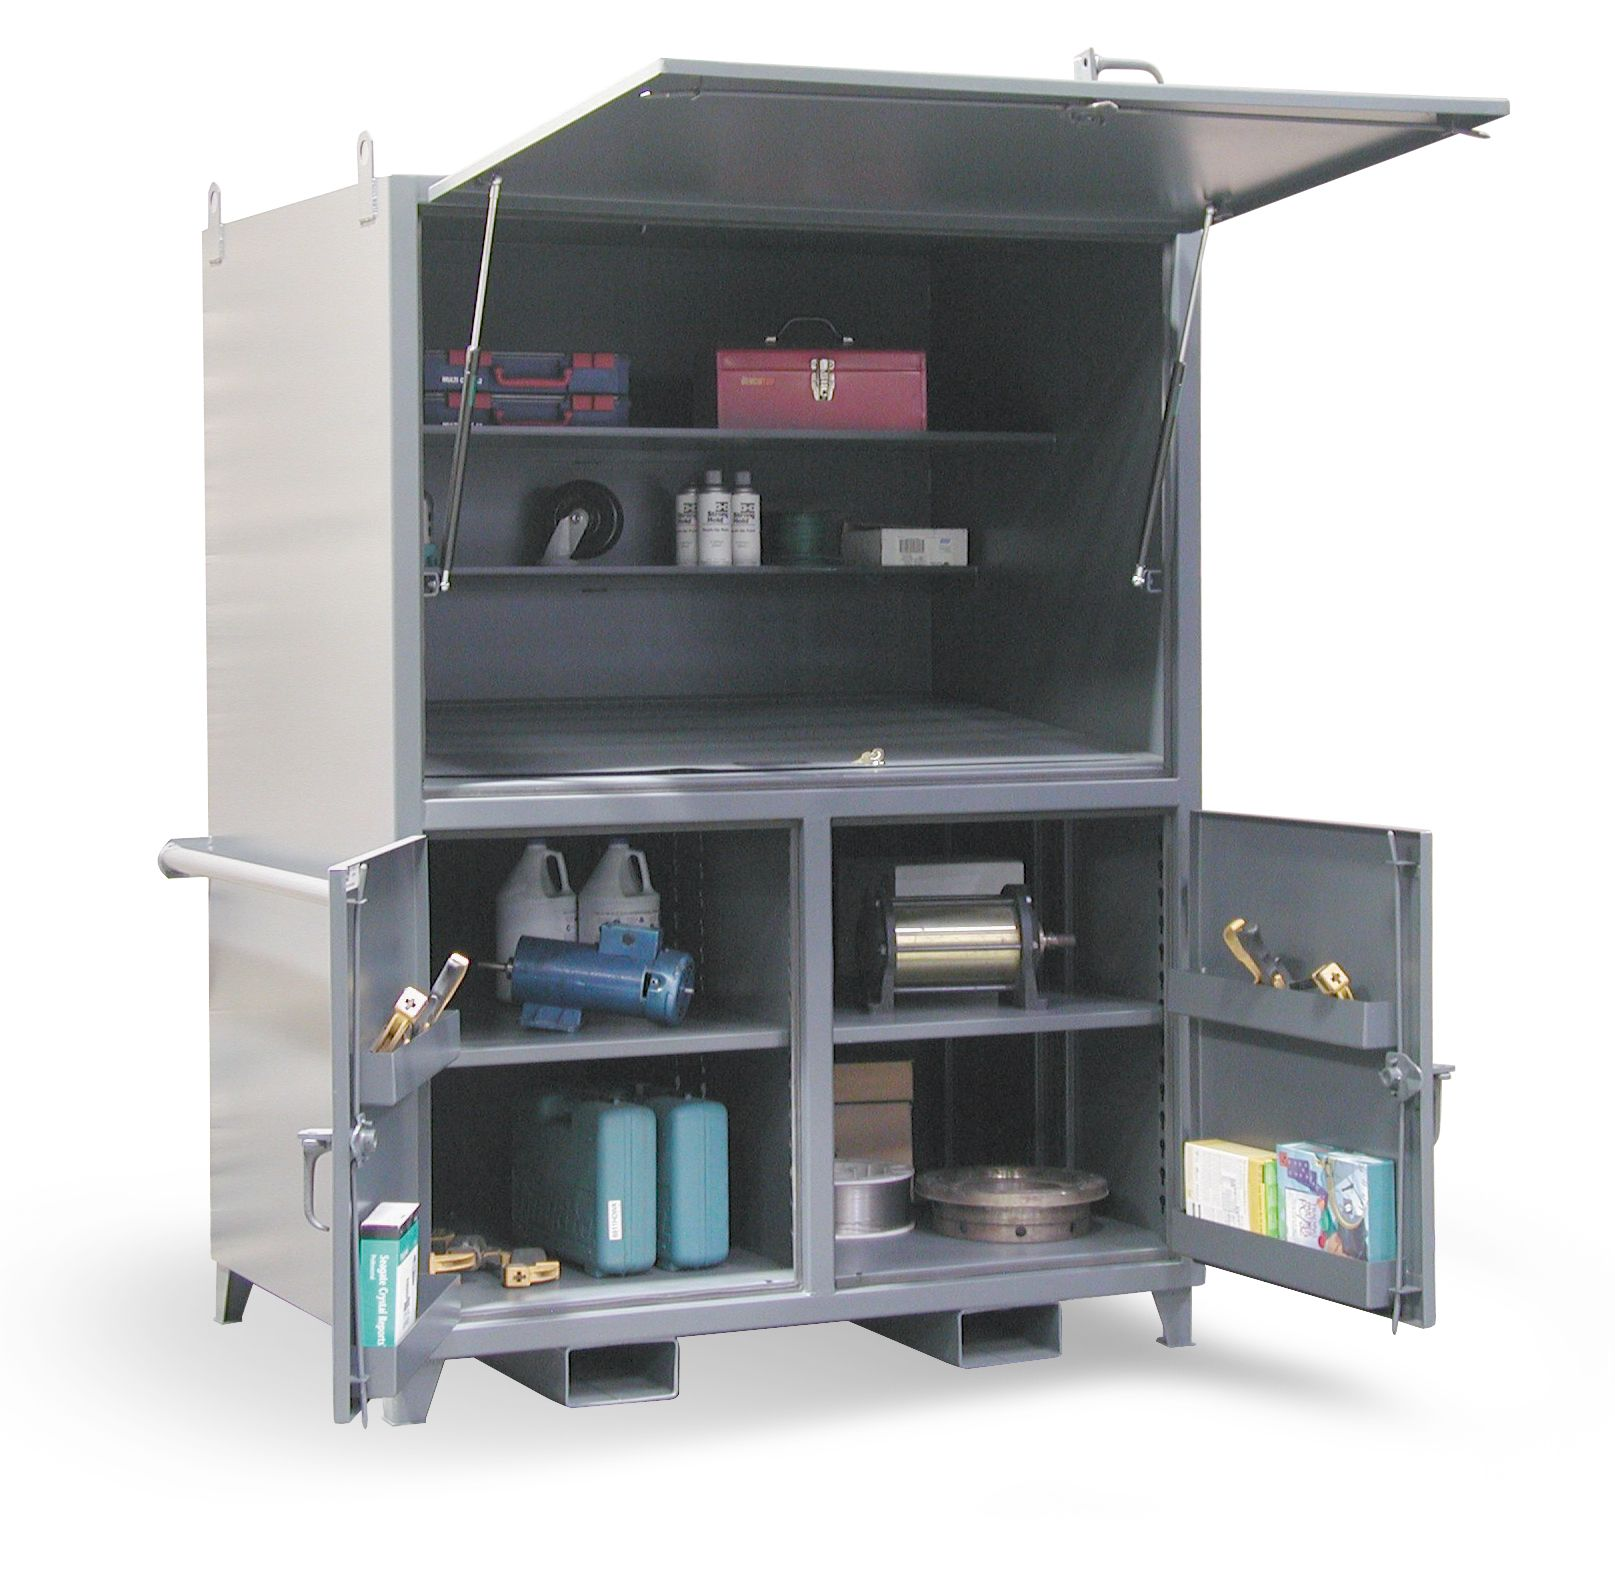 Lovely Portable Construction Storage Cabinet   Heavy Duty Work Site Job Box With  Lift Up Lid